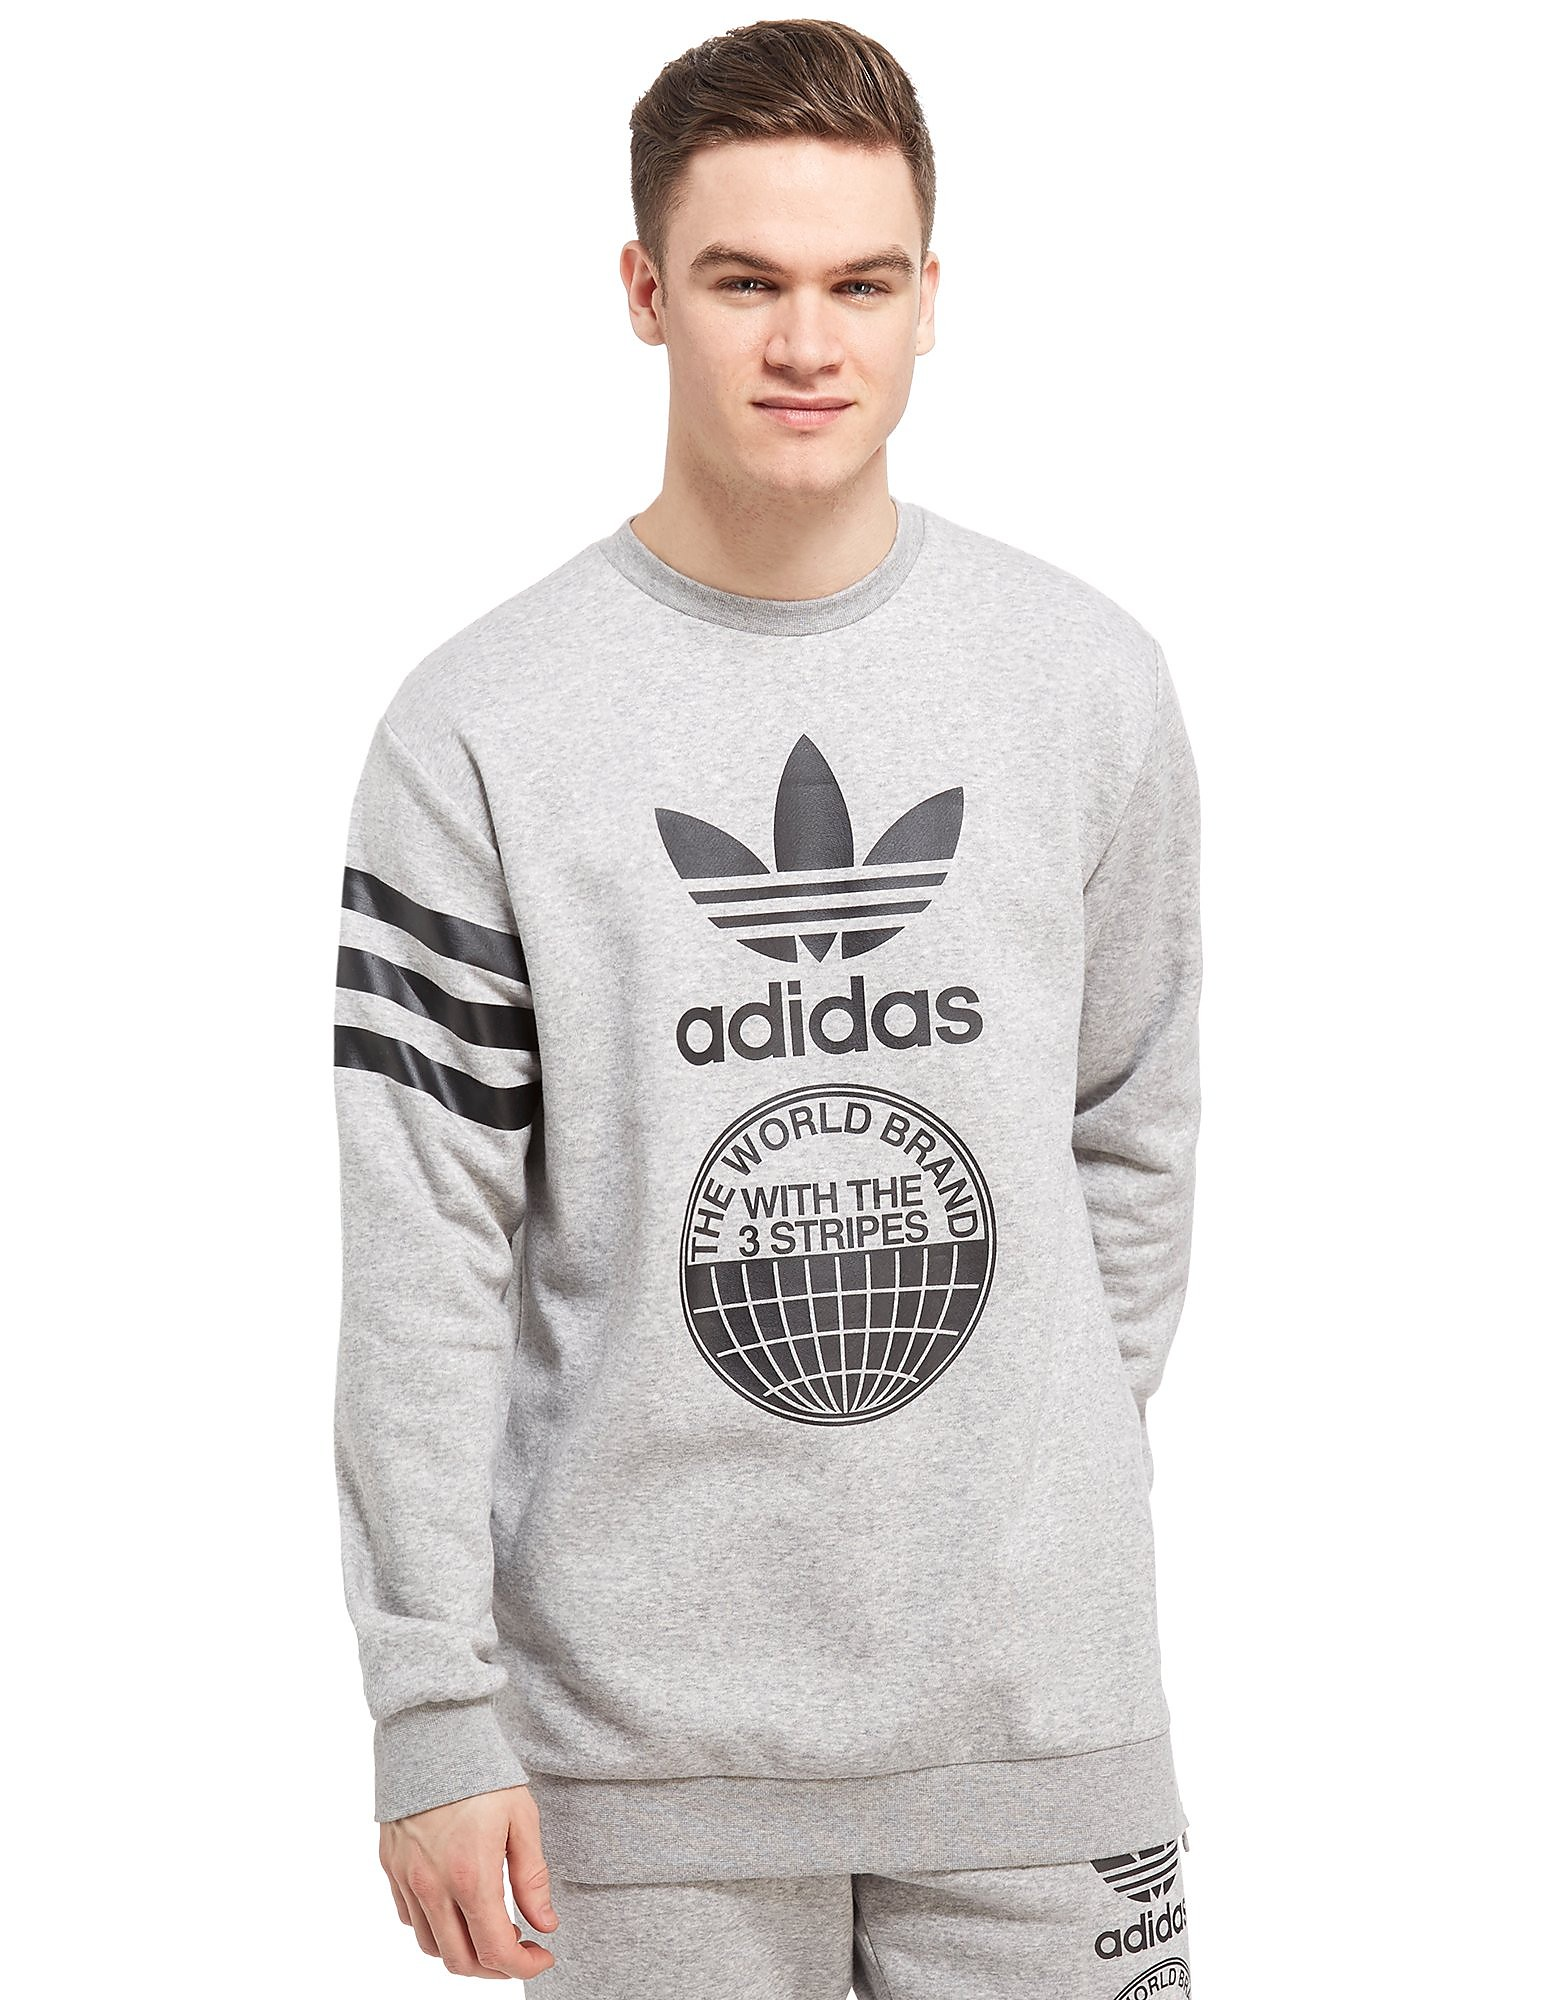 adidas Originals Global Crew Sweatshirt